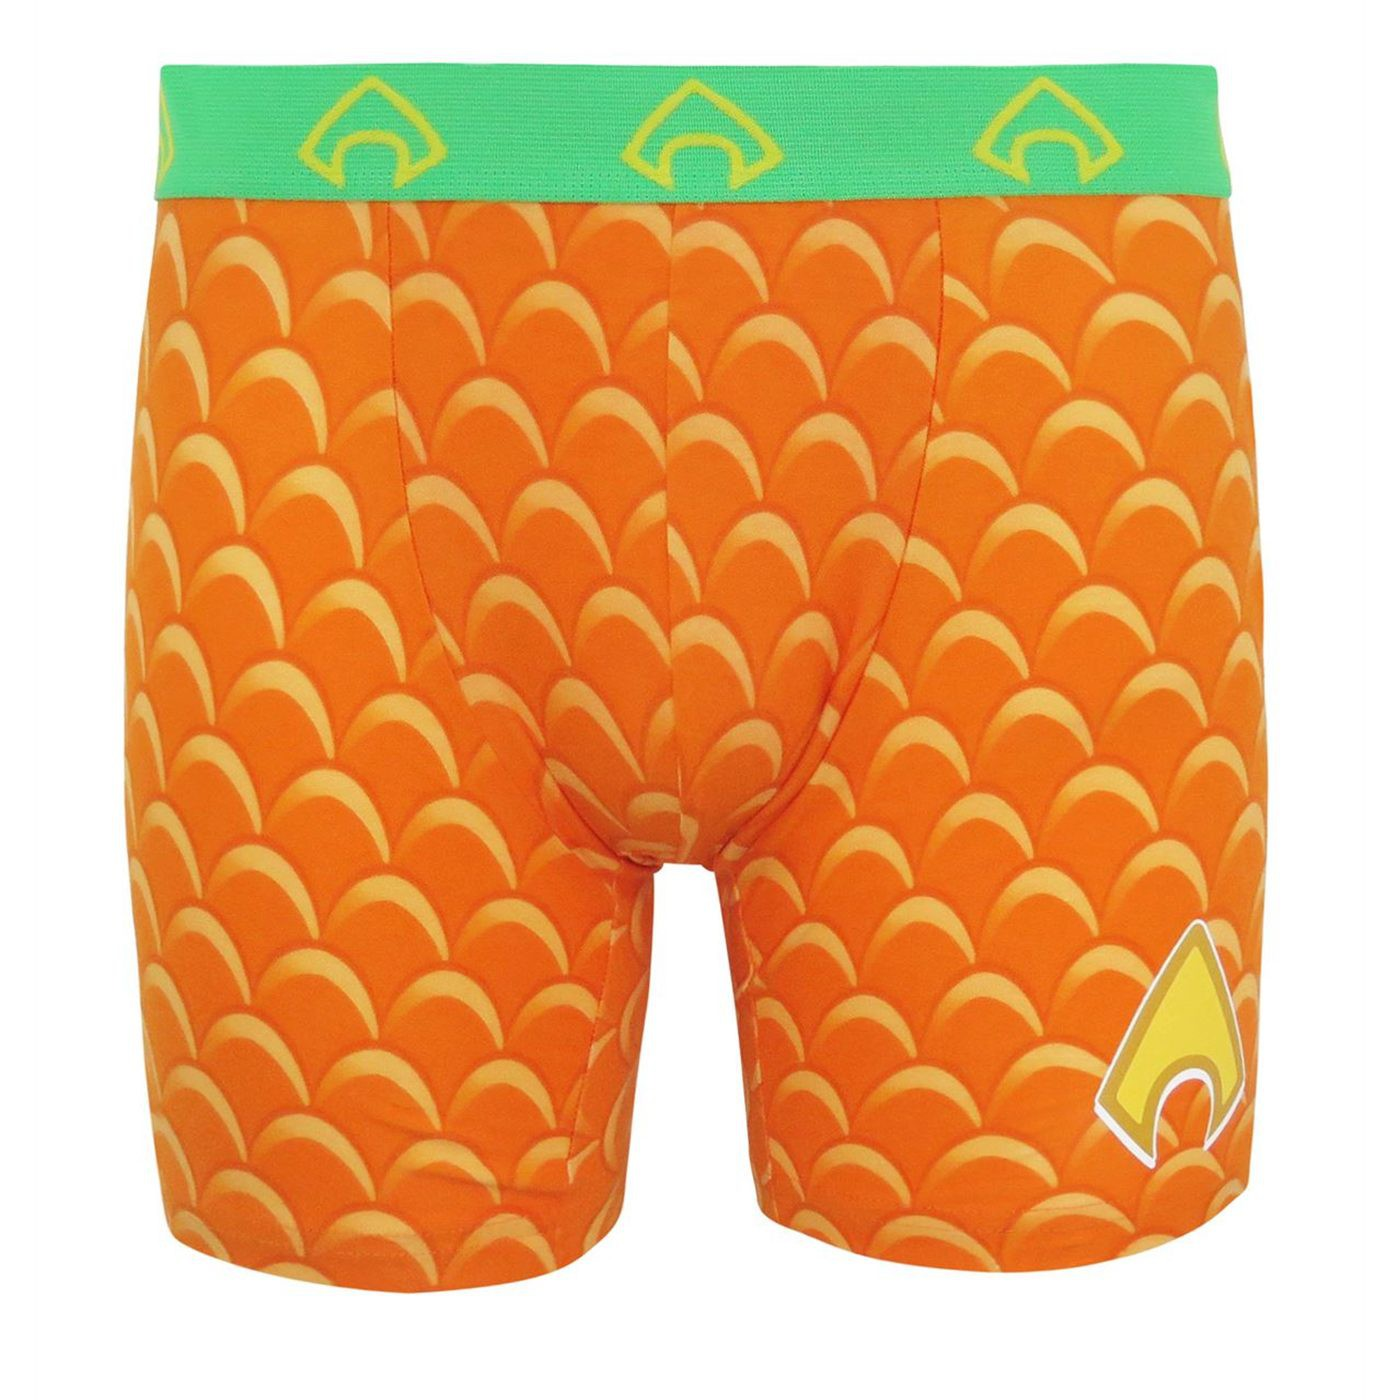 Aquaman Symbol Men's Underwear Fashion Boxer Briefs